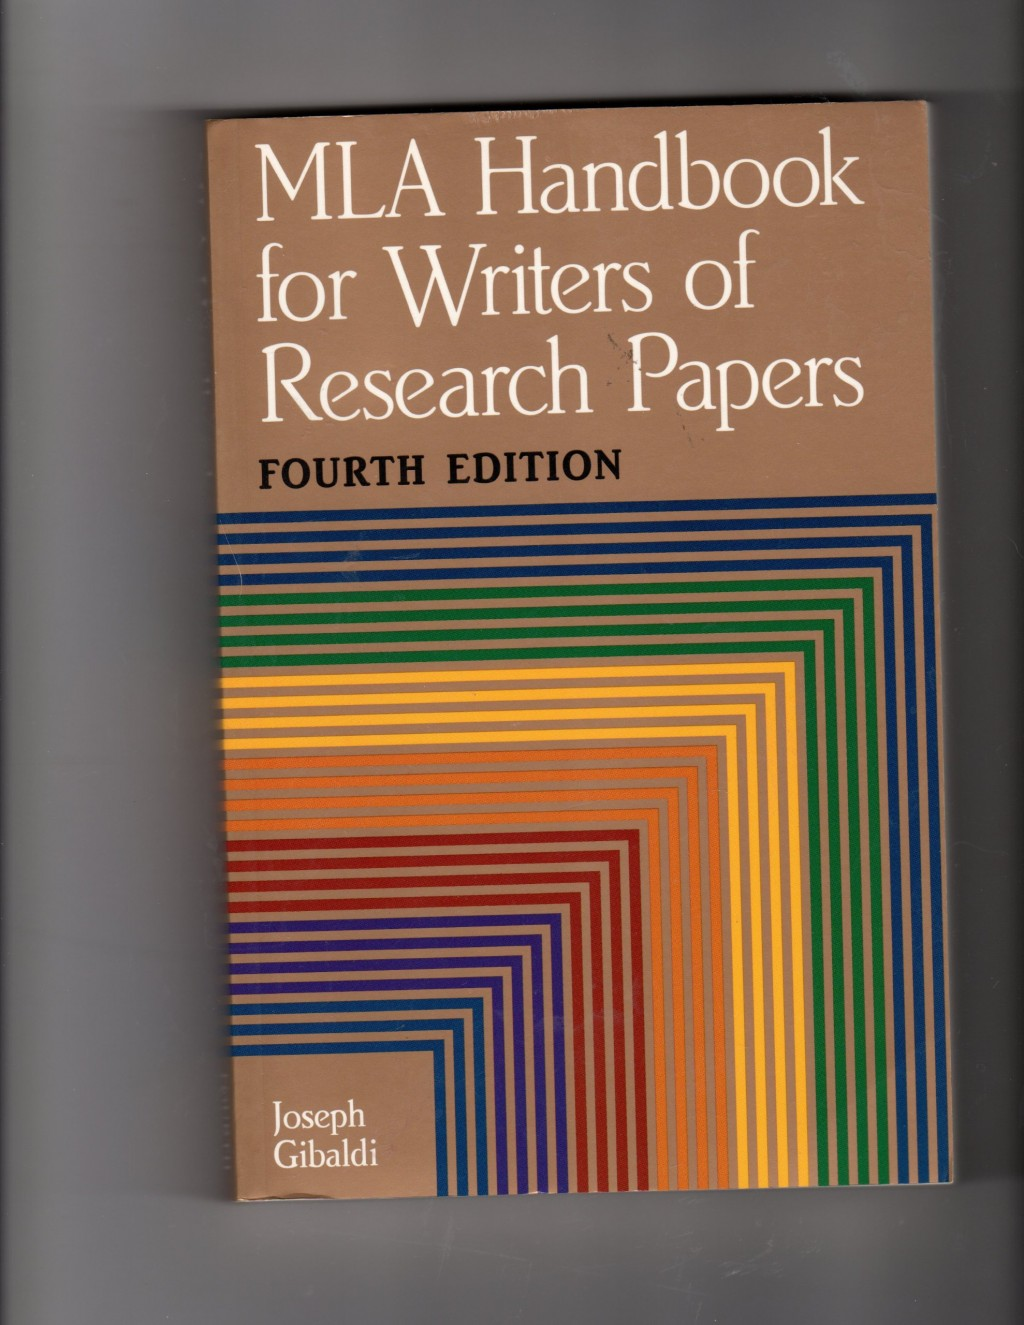 002 91or7esc2gl Mla Handbook For Writing Researchs Frightening Research Papers Writers Of 8th Edition Pdf Free Download According To The Large